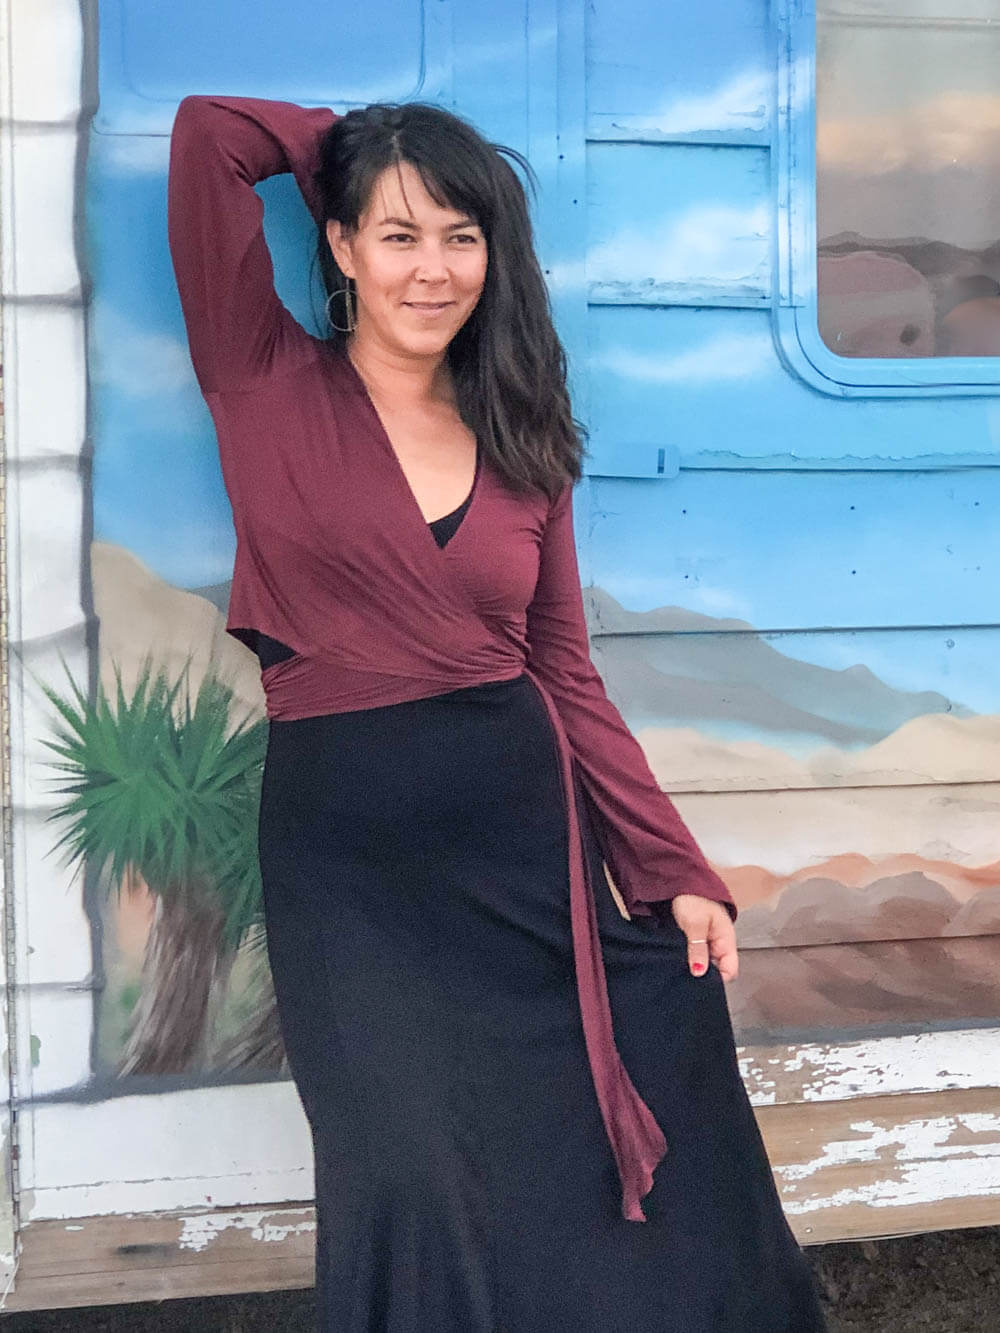 womens plant-based rayon  jersey wrap shrug can be worn as a top in wine #color_wine